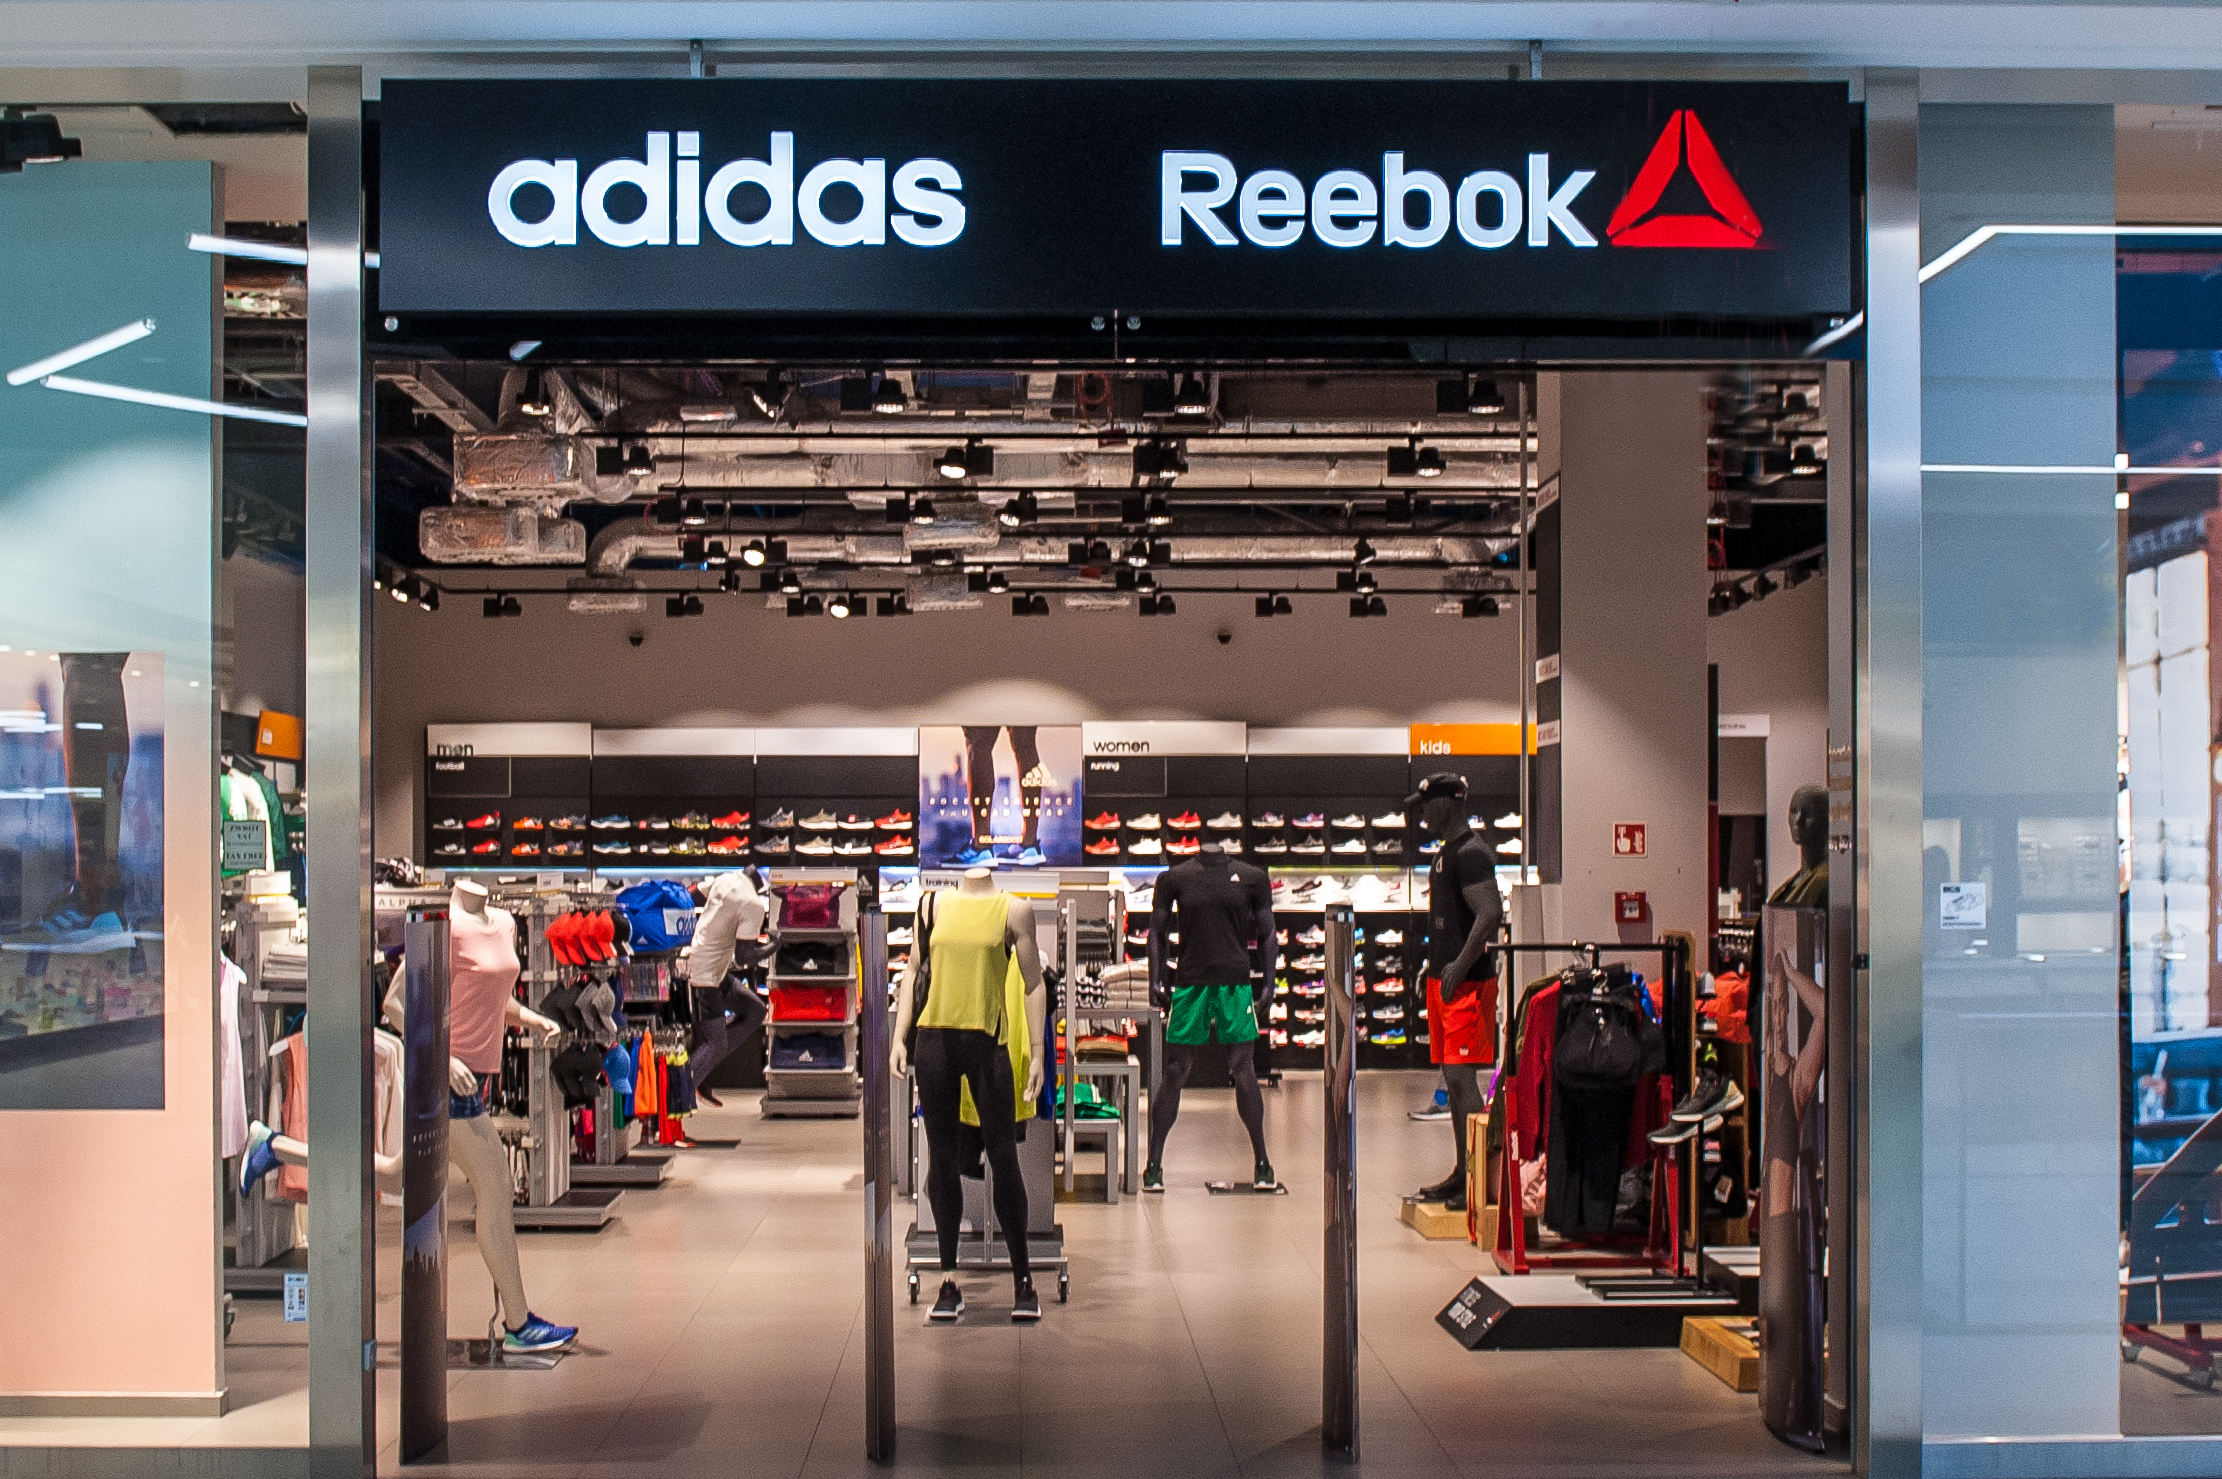 Adidas may sell Reebok